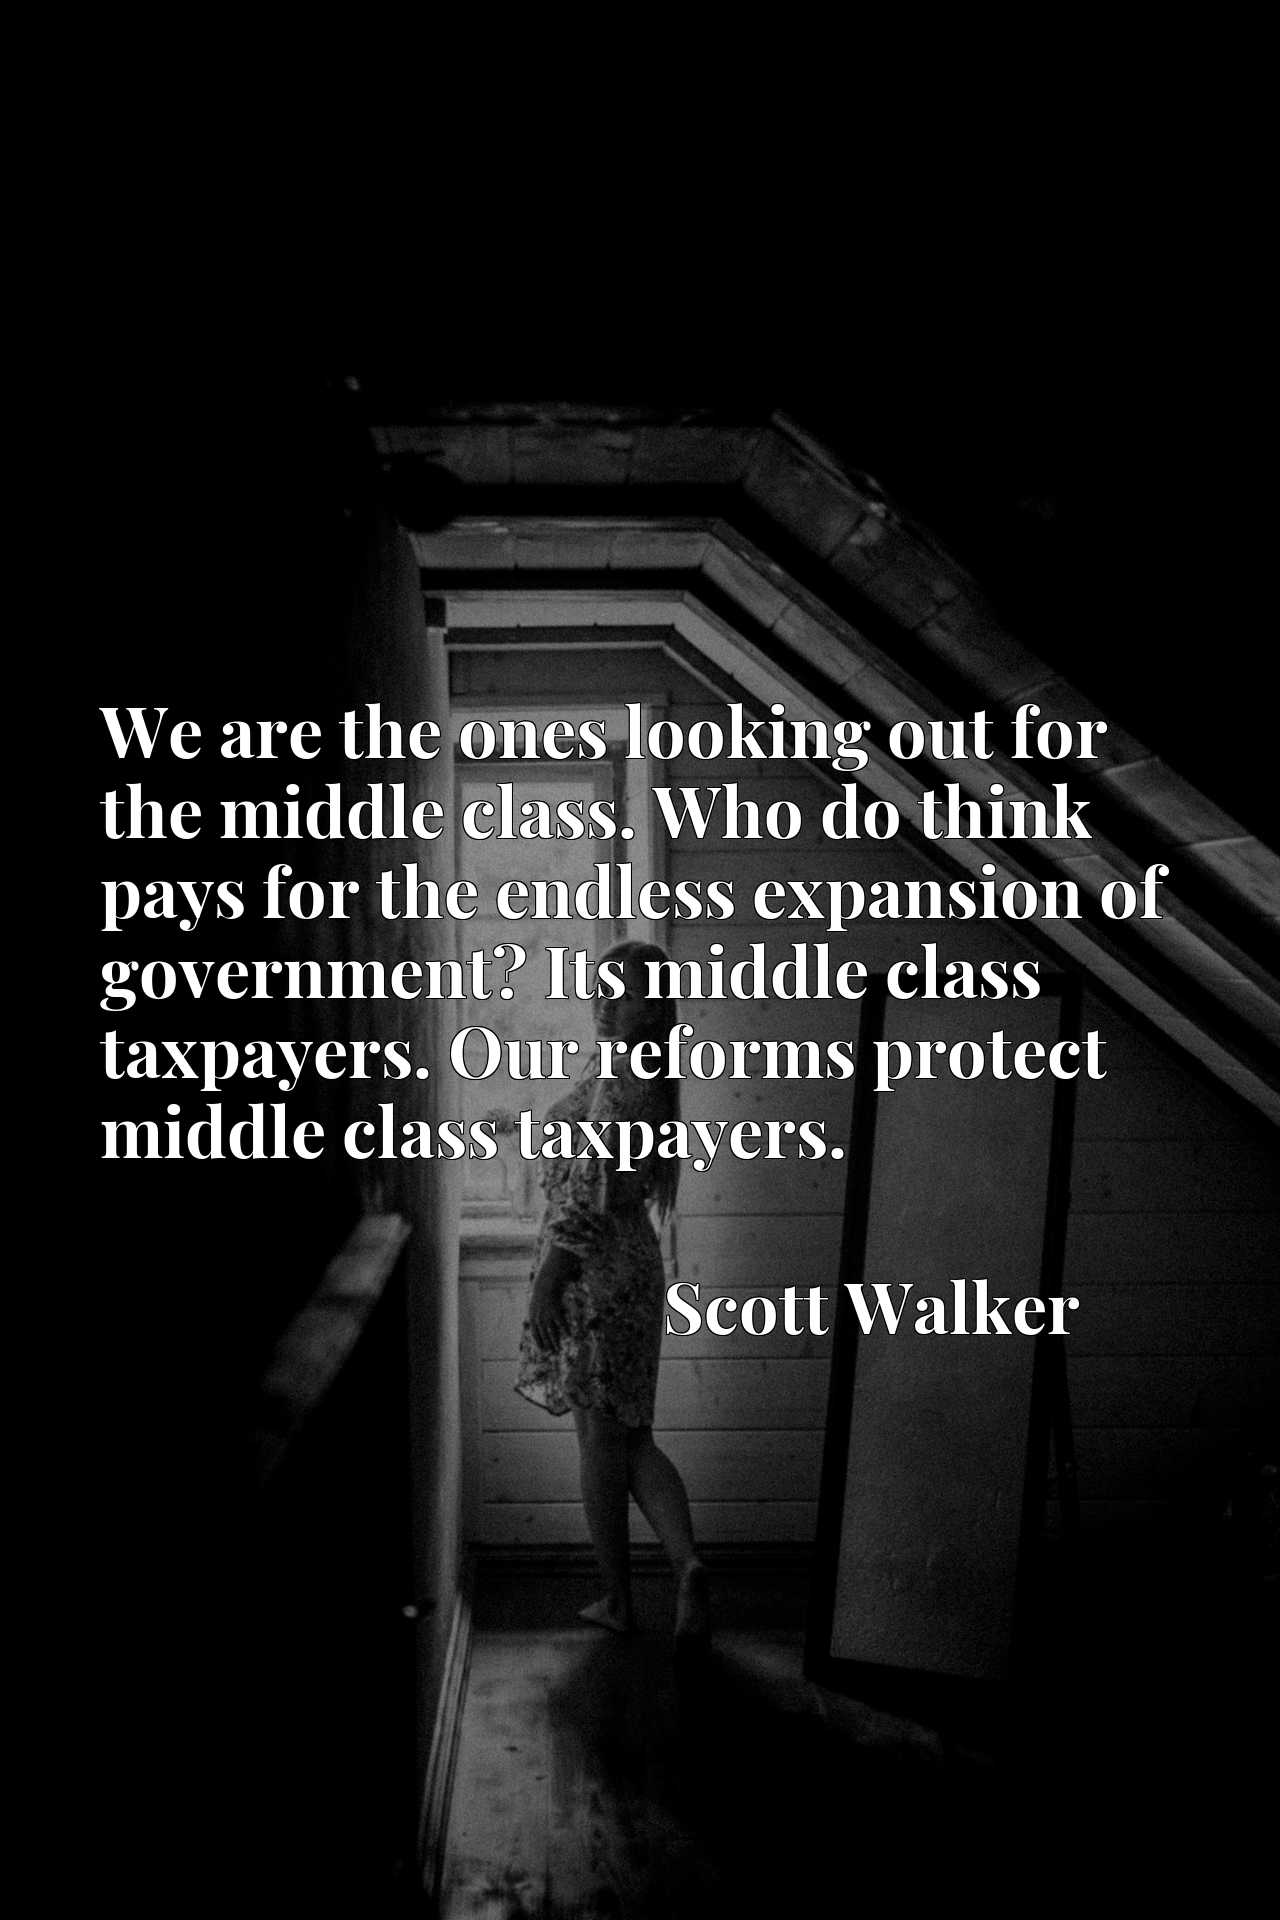 We are the ones looking out for the middle class. Who do think pays for the endless expansion of government? Its middle class taxpayers. Our reforms protect middle class taxpayers.